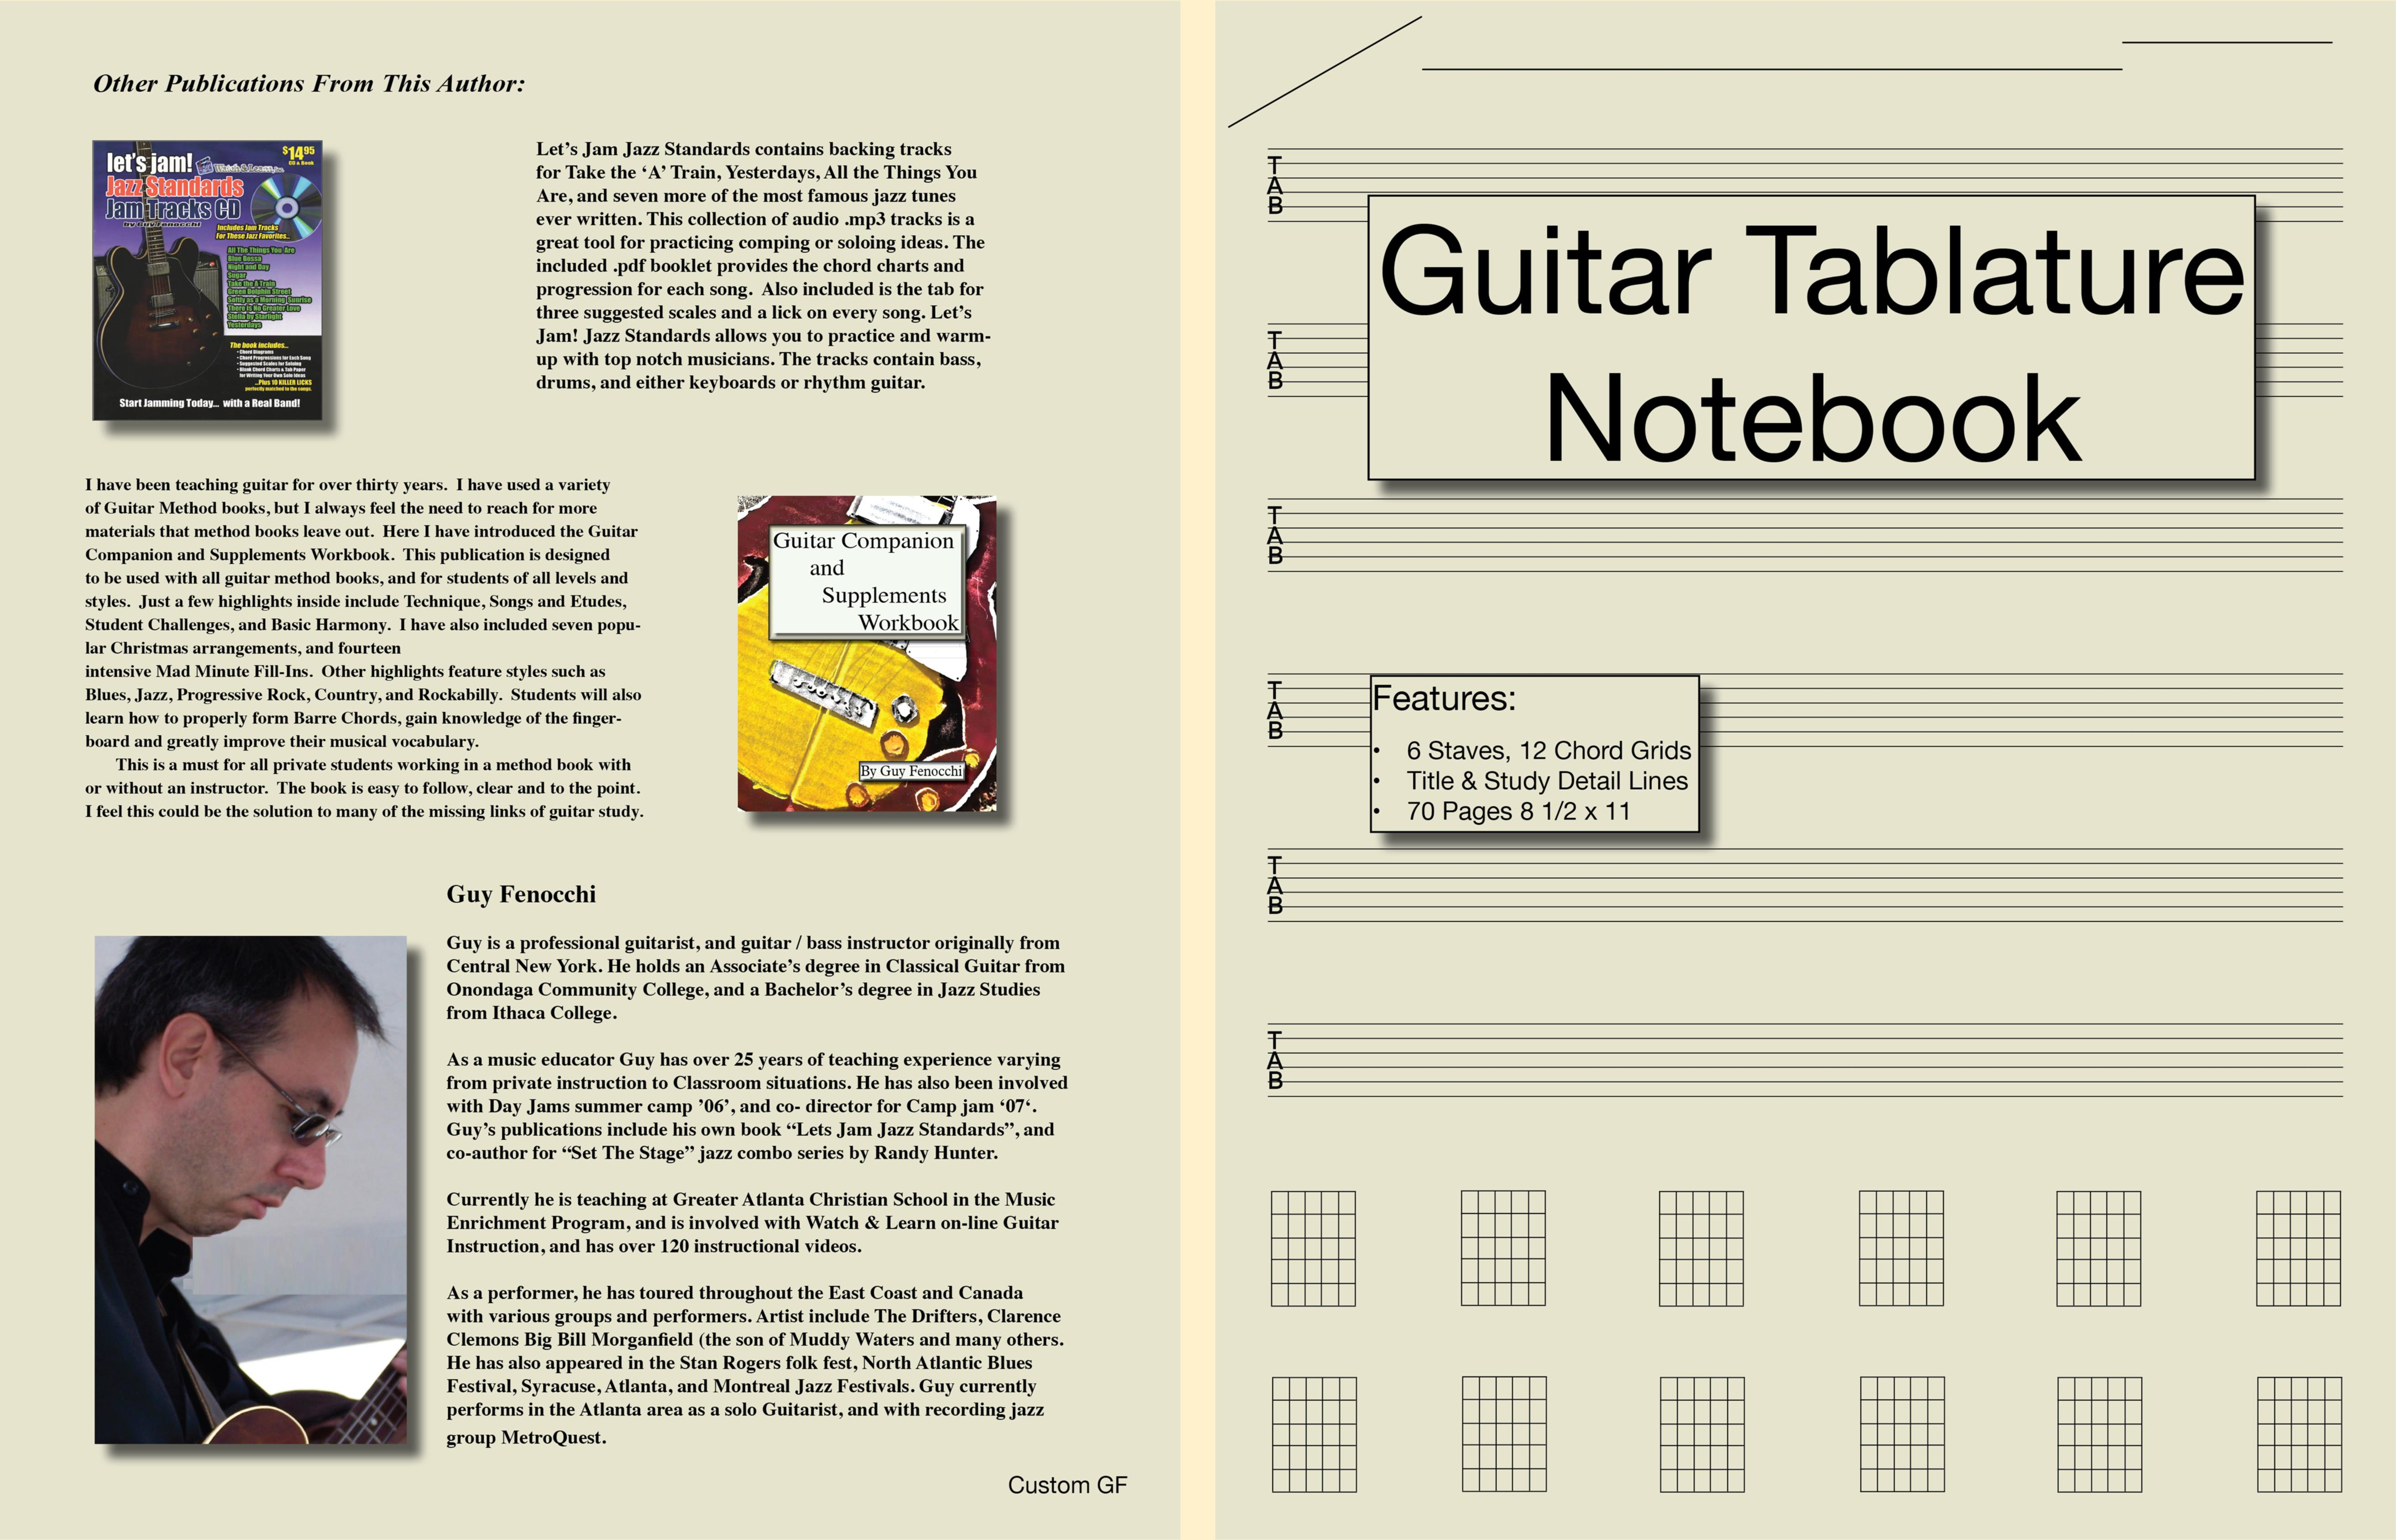 Guitar Tablature Notebook by Guy Fenocchi : $5.36 : TheBookPatch.com